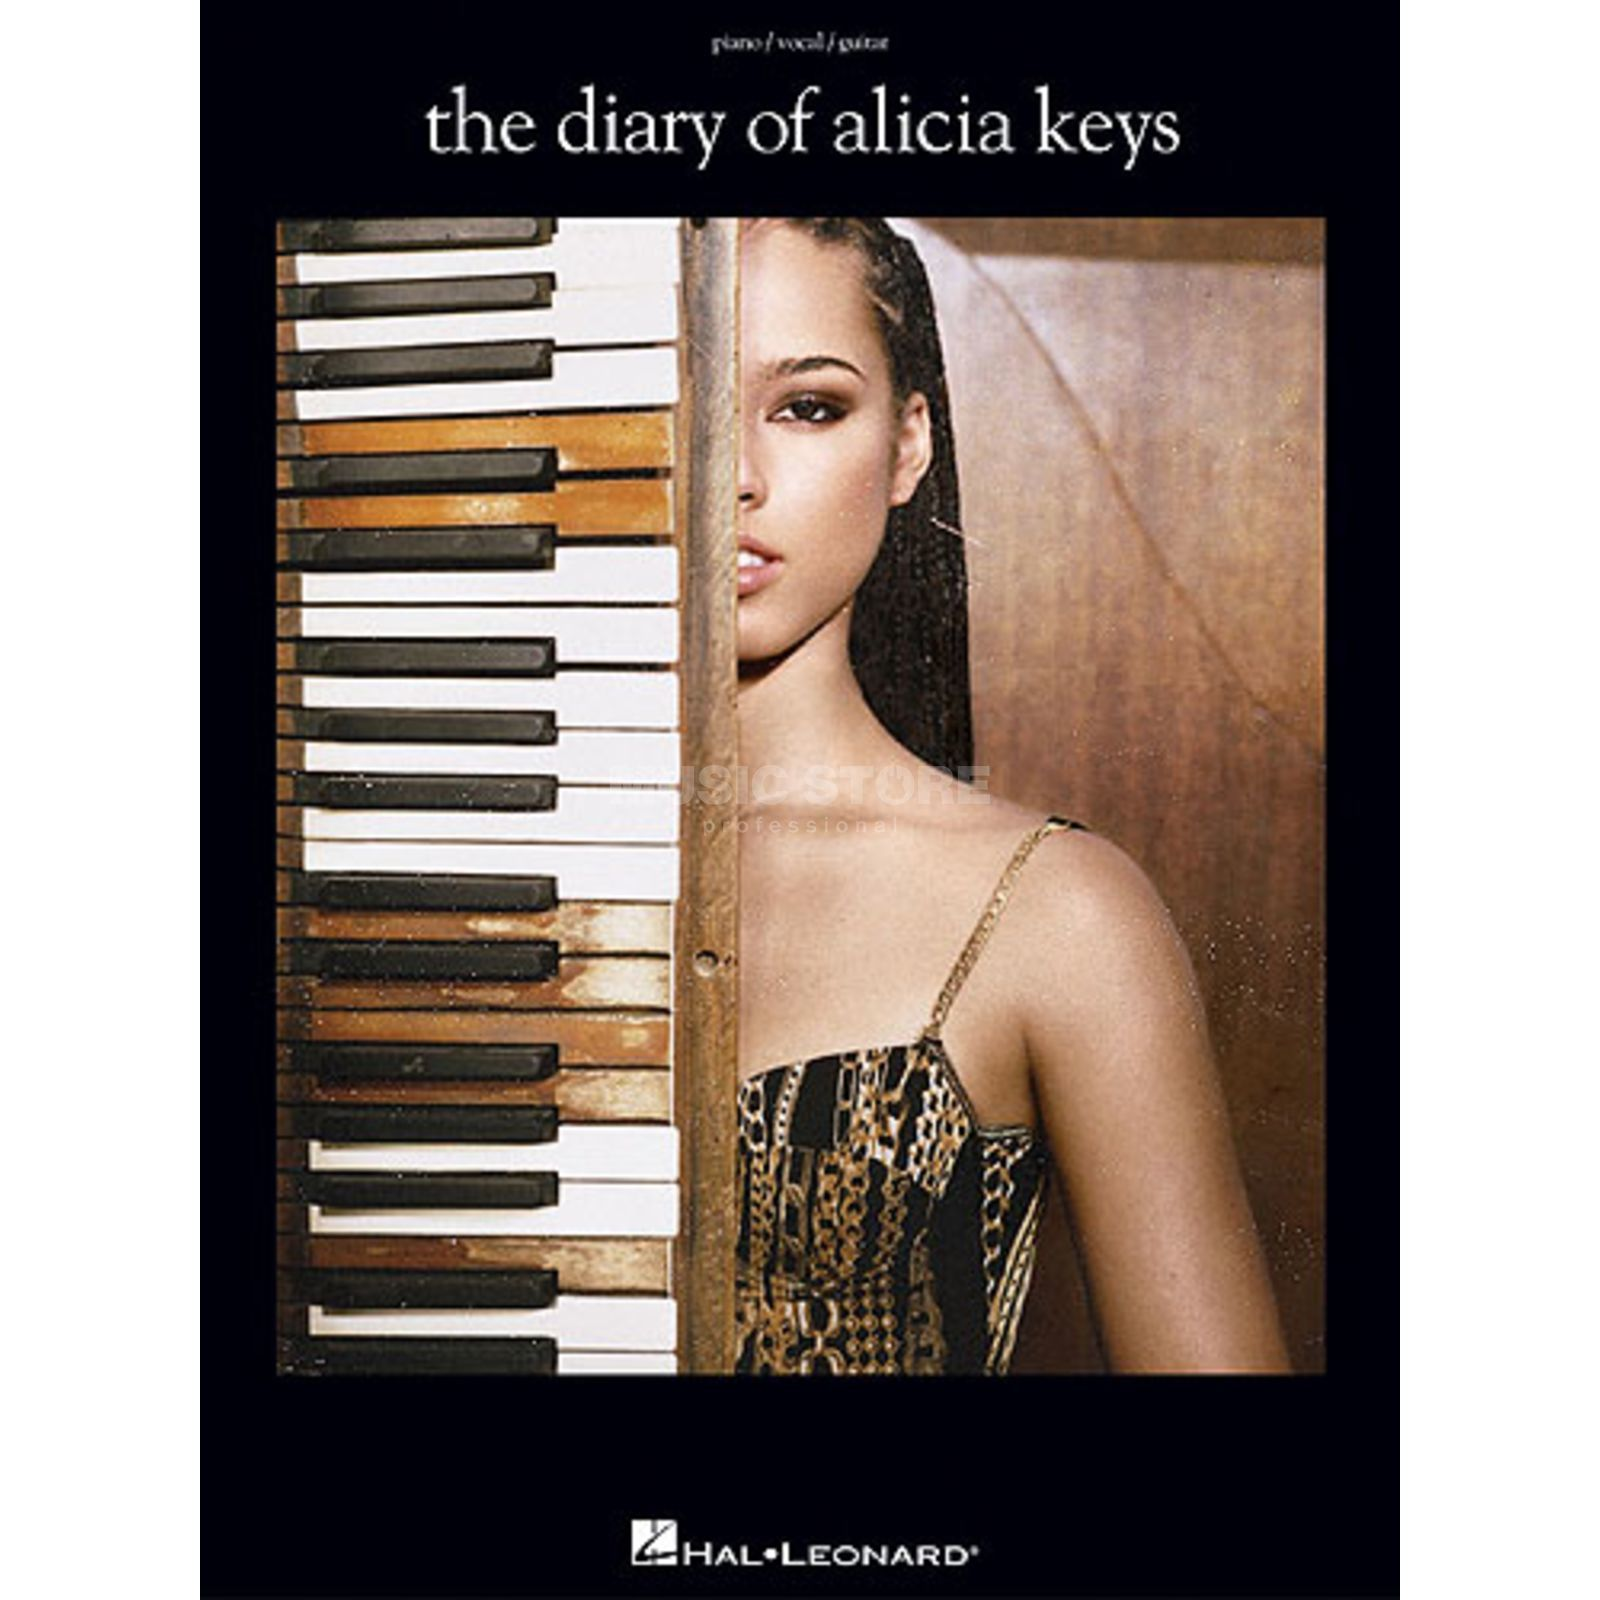 Hal Leonard Alicia Keys: The Diary Of Alicia Keys Produktbild